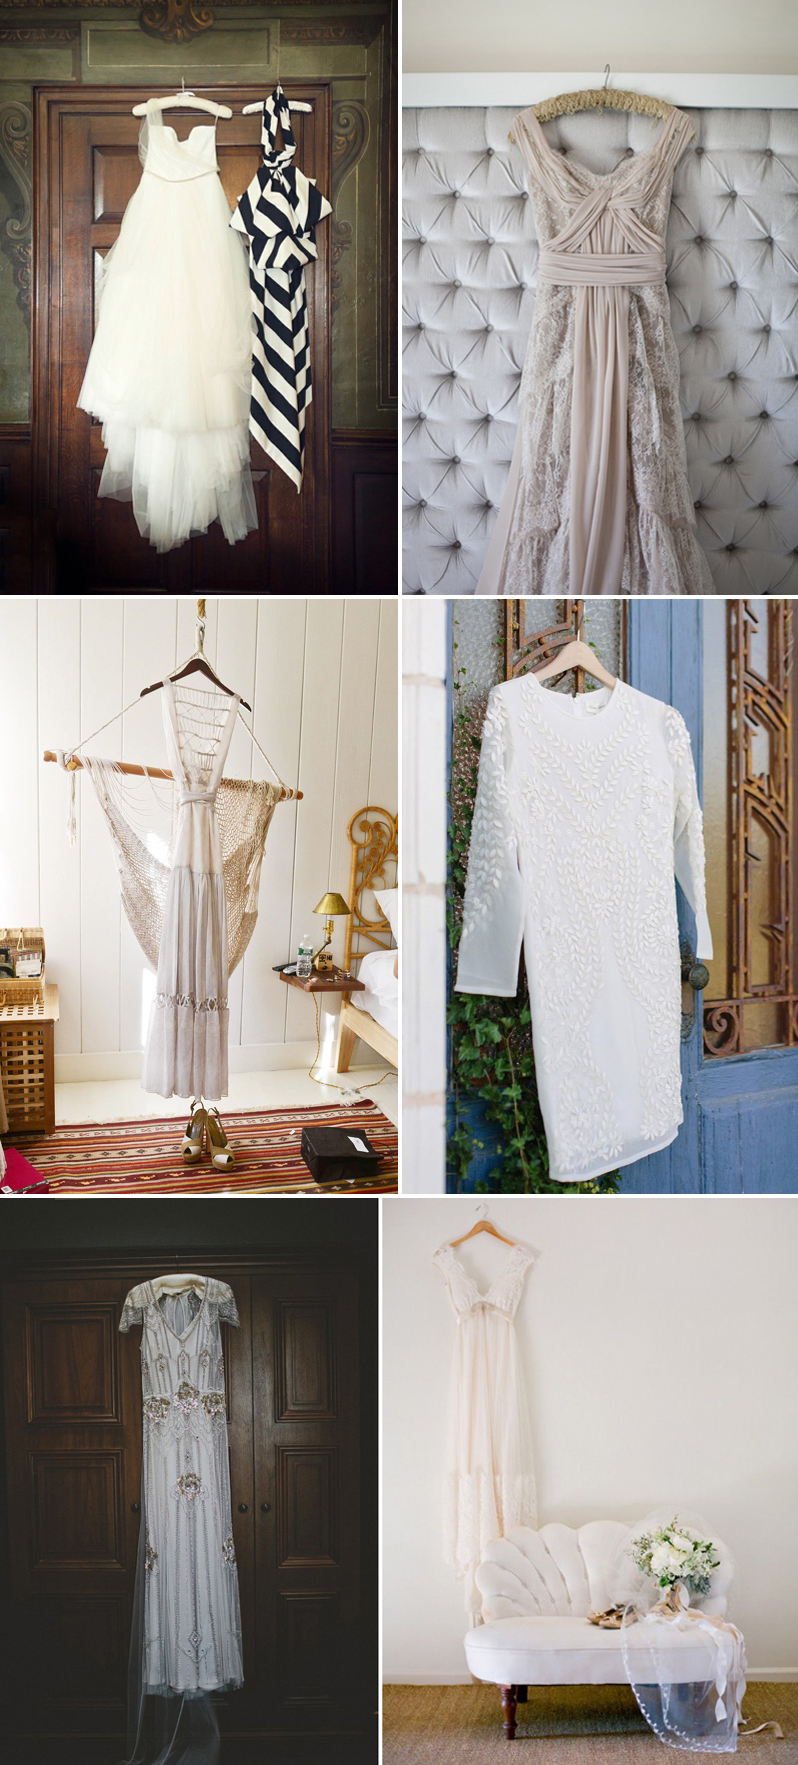 Coco Wedding Venues - Pinterest Peek - The Dress Shot.